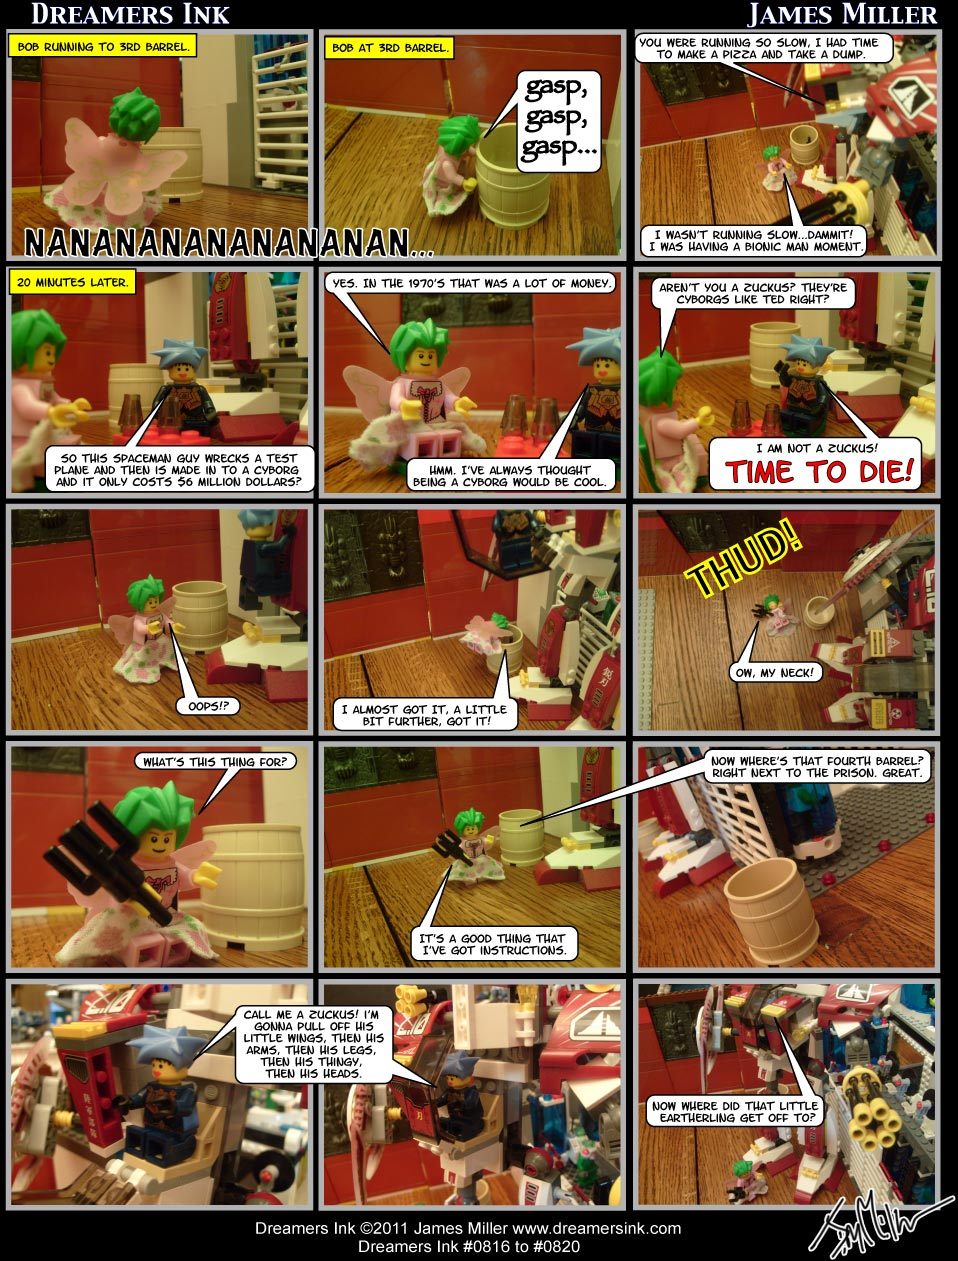 Strips #0816 To #0820